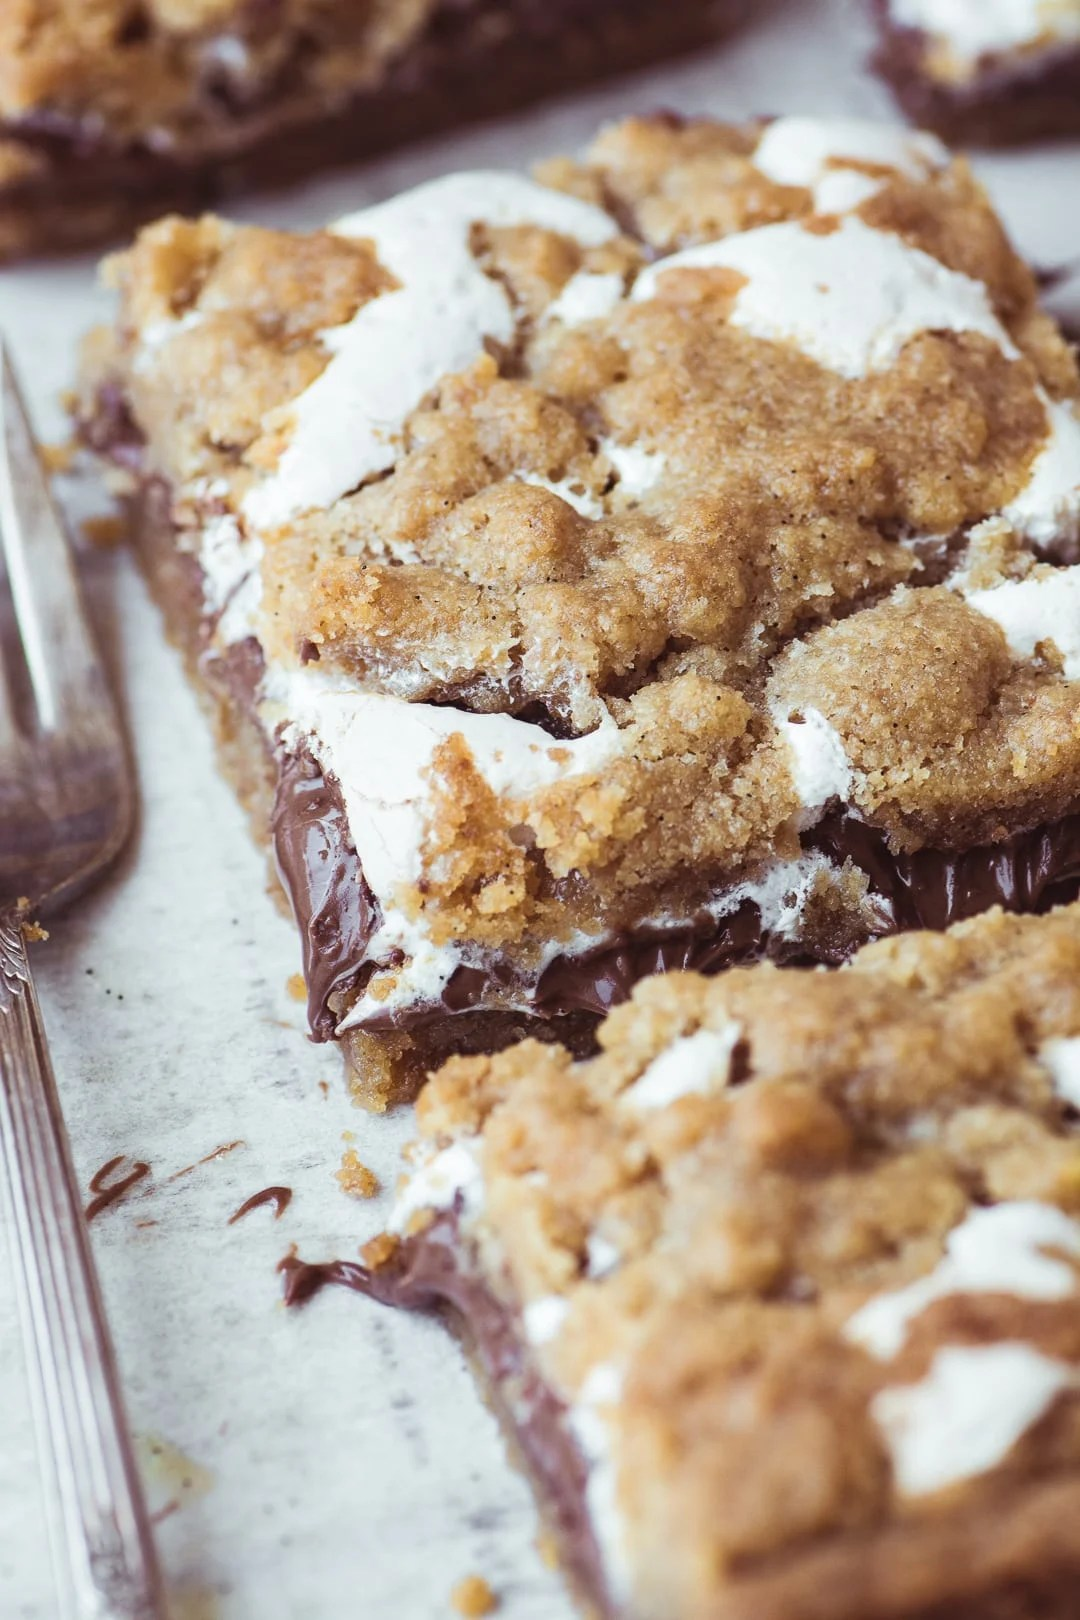 Nutella S'mores Bars ~ everybody's favorite summer treat in an ooey, gooey, decadent, and delicious bar, no campfire needed! Make a batch and watch them disappear before your eyes.